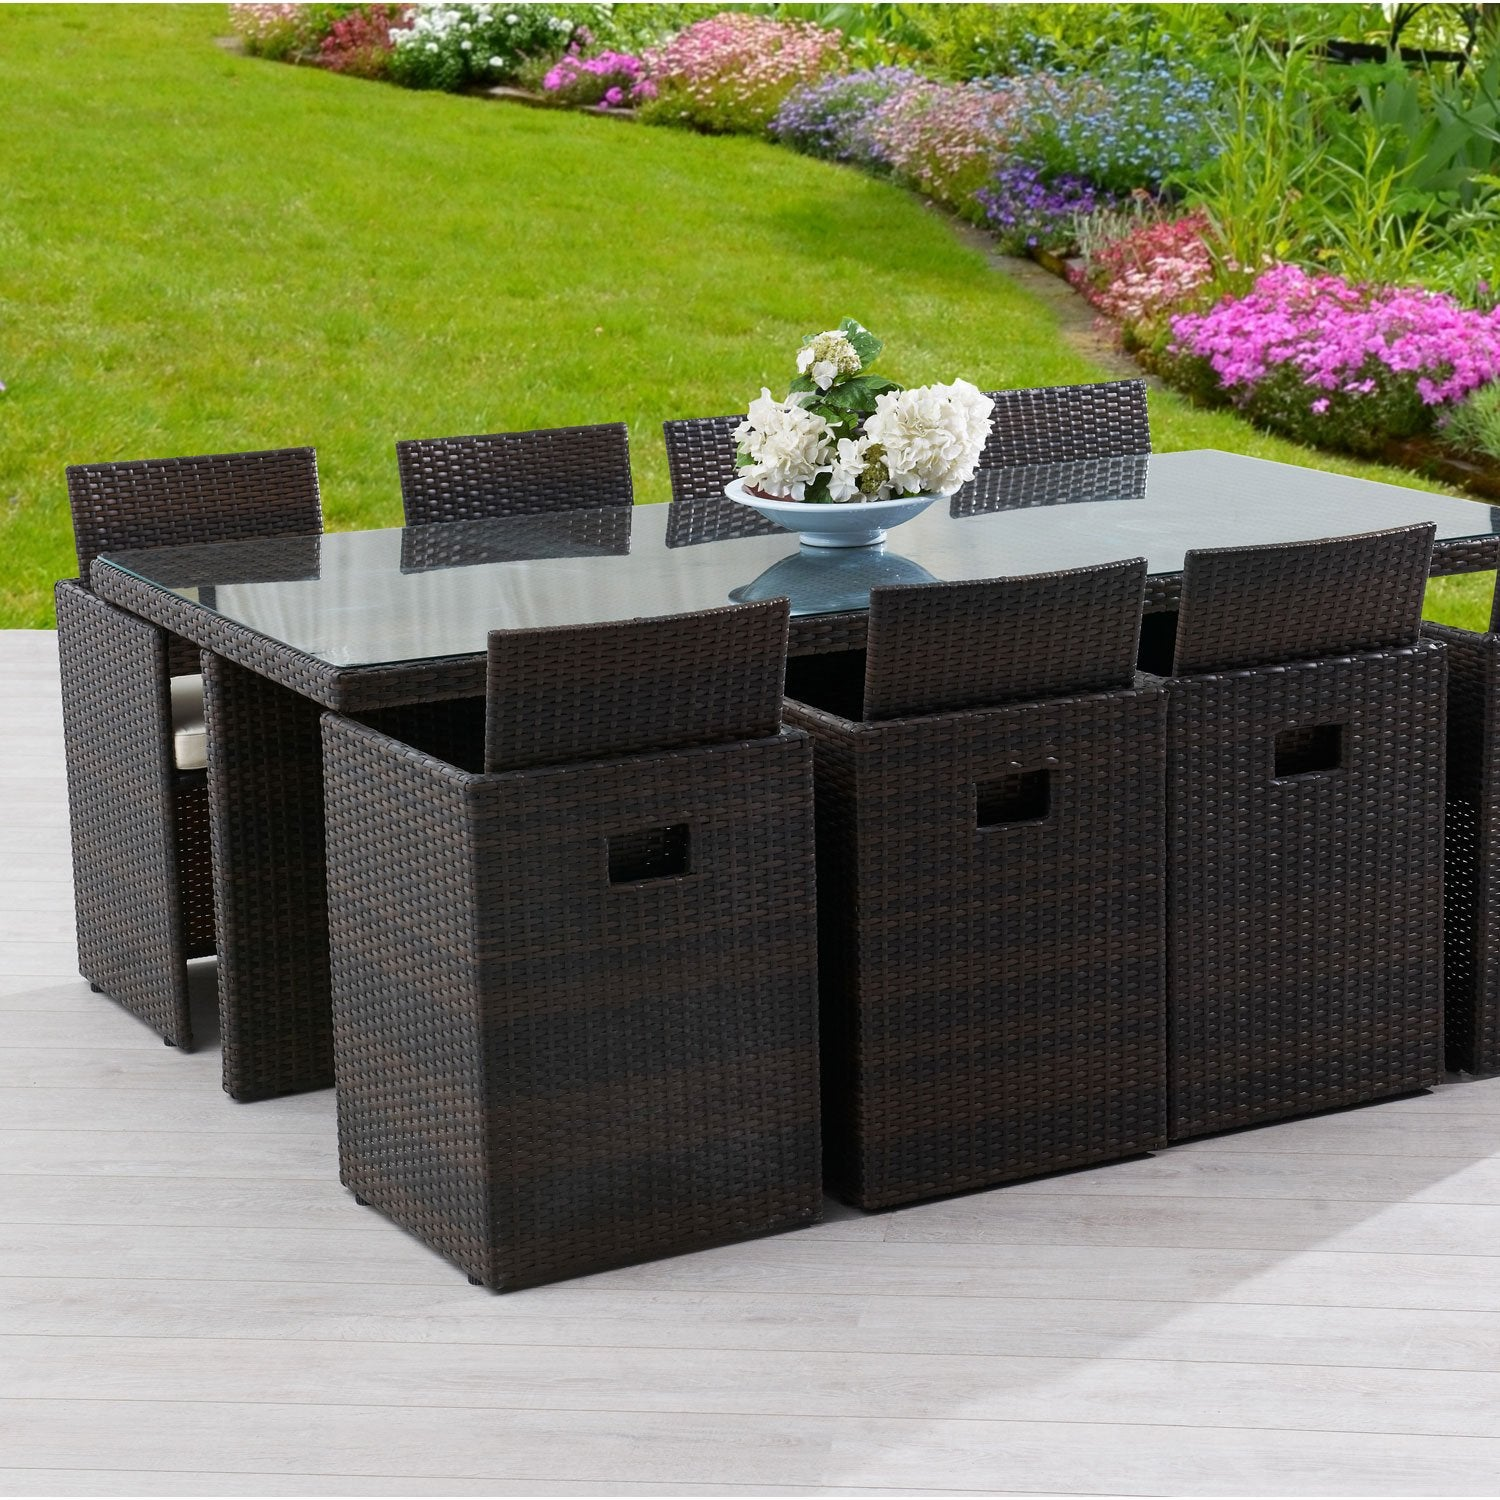 salon de jardin encastrable r sine tress e marron 1 table. Black Bedroom Furniture Sets. Home Design Ideas